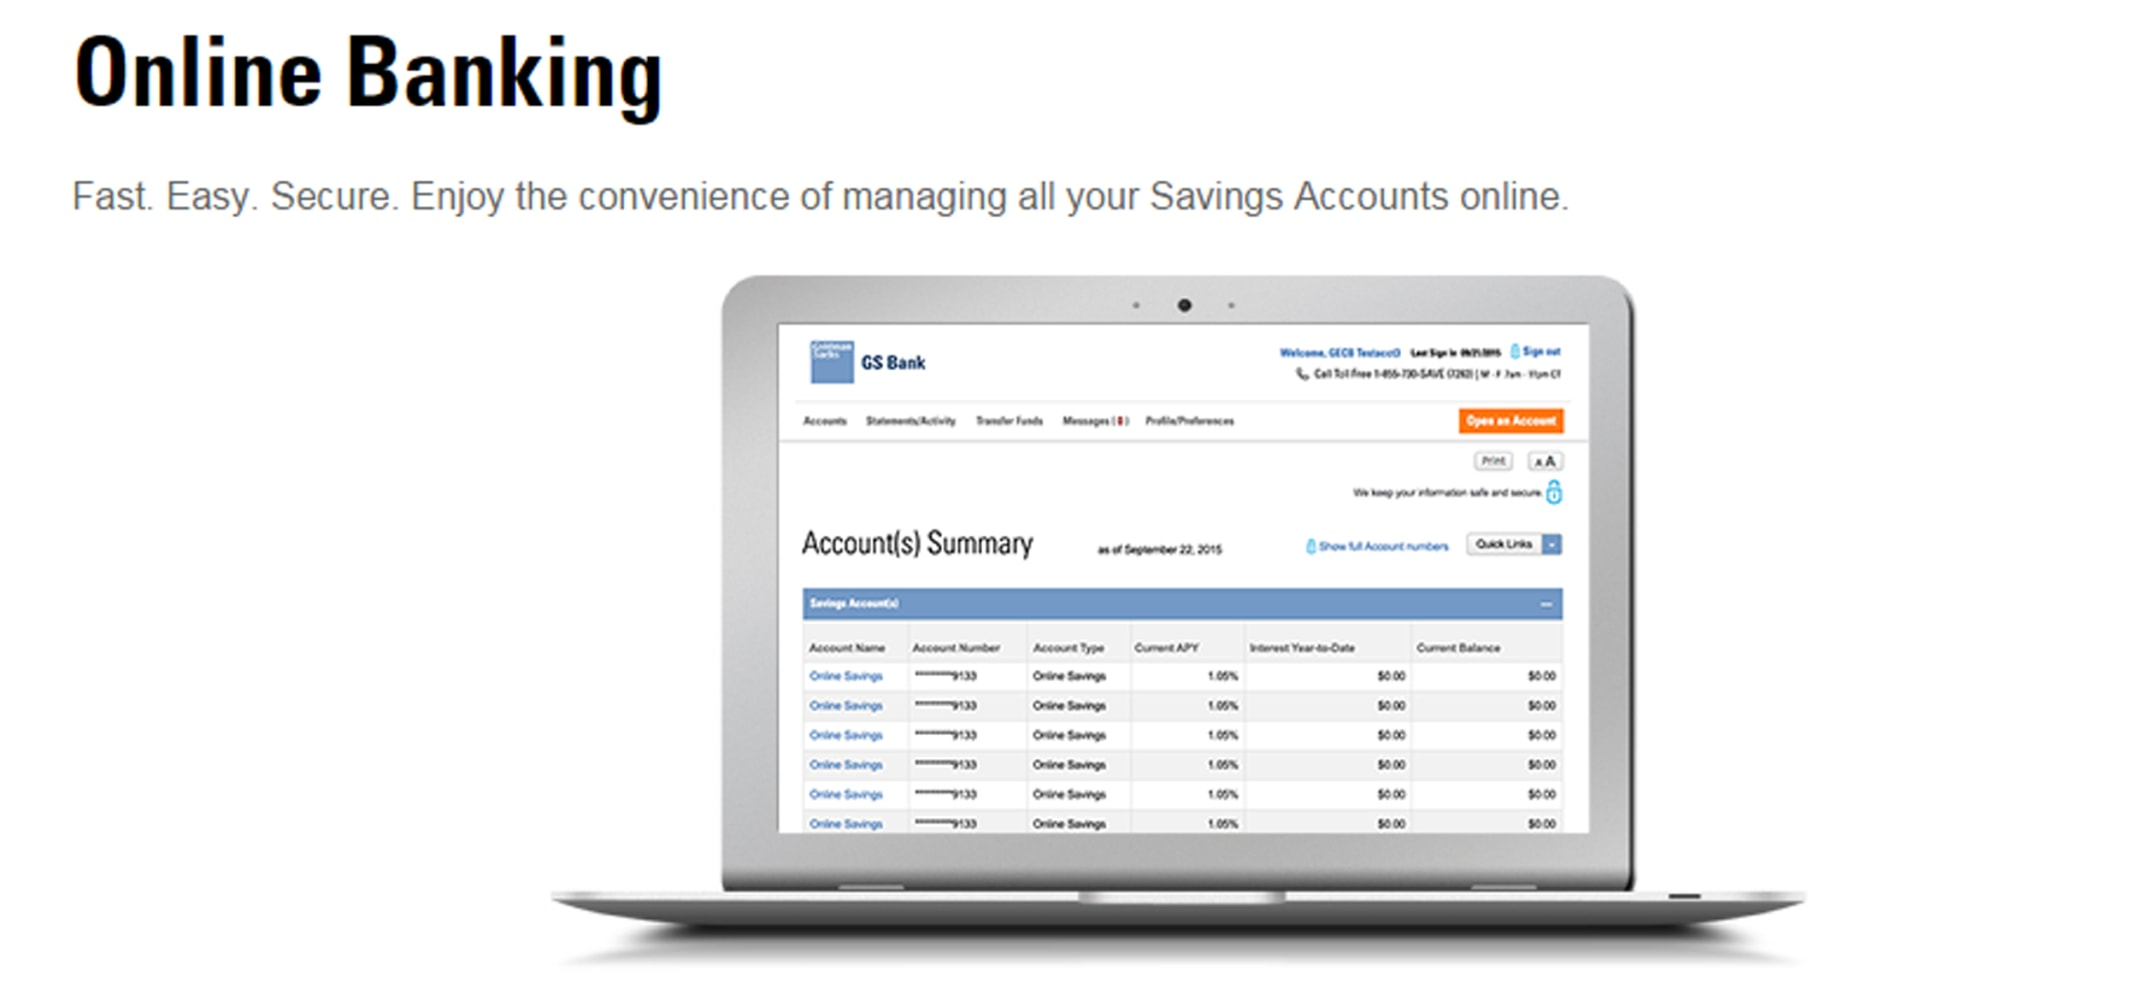 Goldman sachs launched gs bank in april 2016 offering online savings